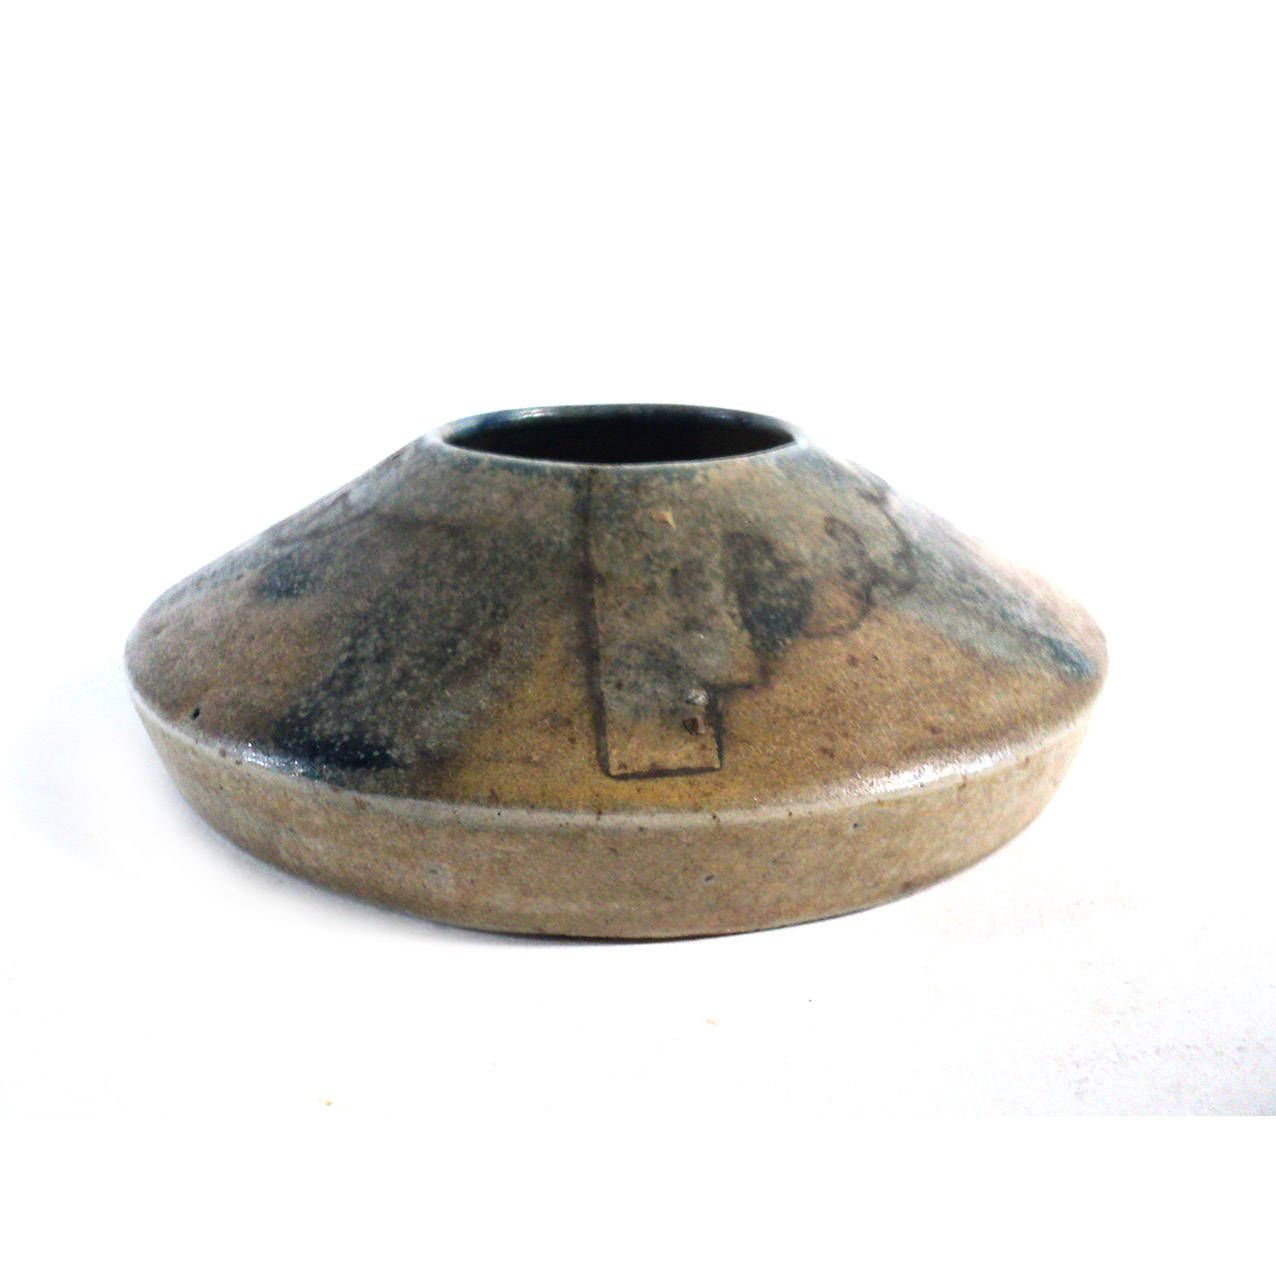 French Flame Glazed Miniature Vase, L'Artisan Pratique, Small Beige Art Deco Stoneware Pot, Candleholder Paper Weight